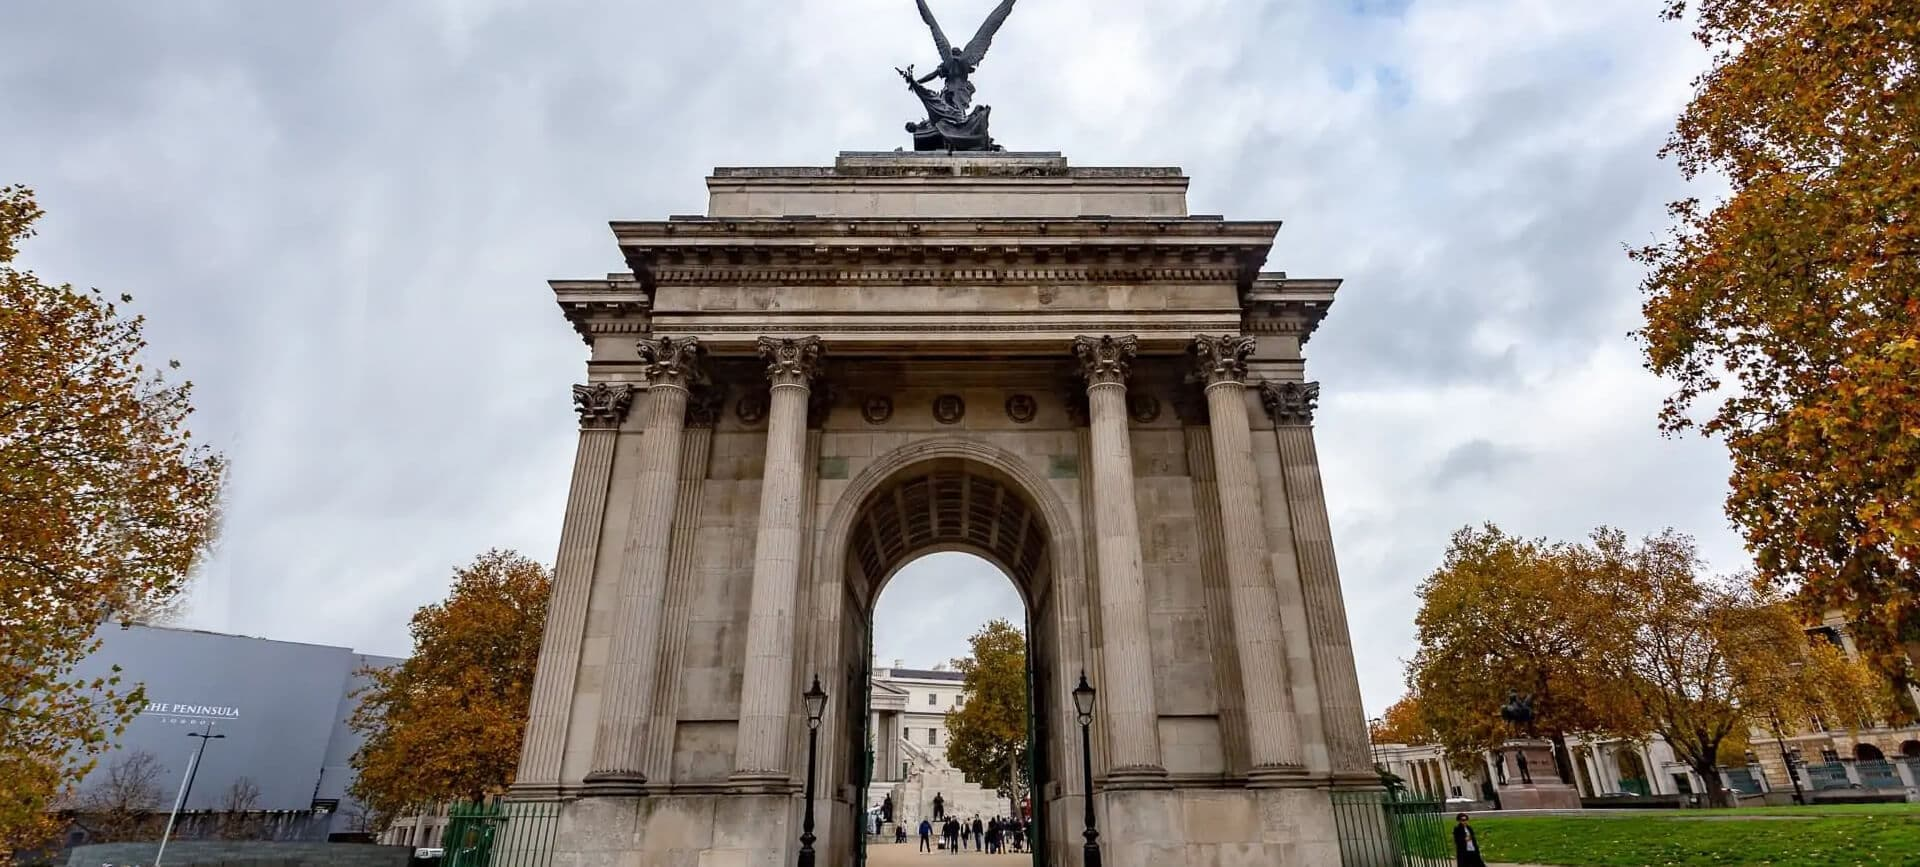 Wellington Arch in Mayfair, London